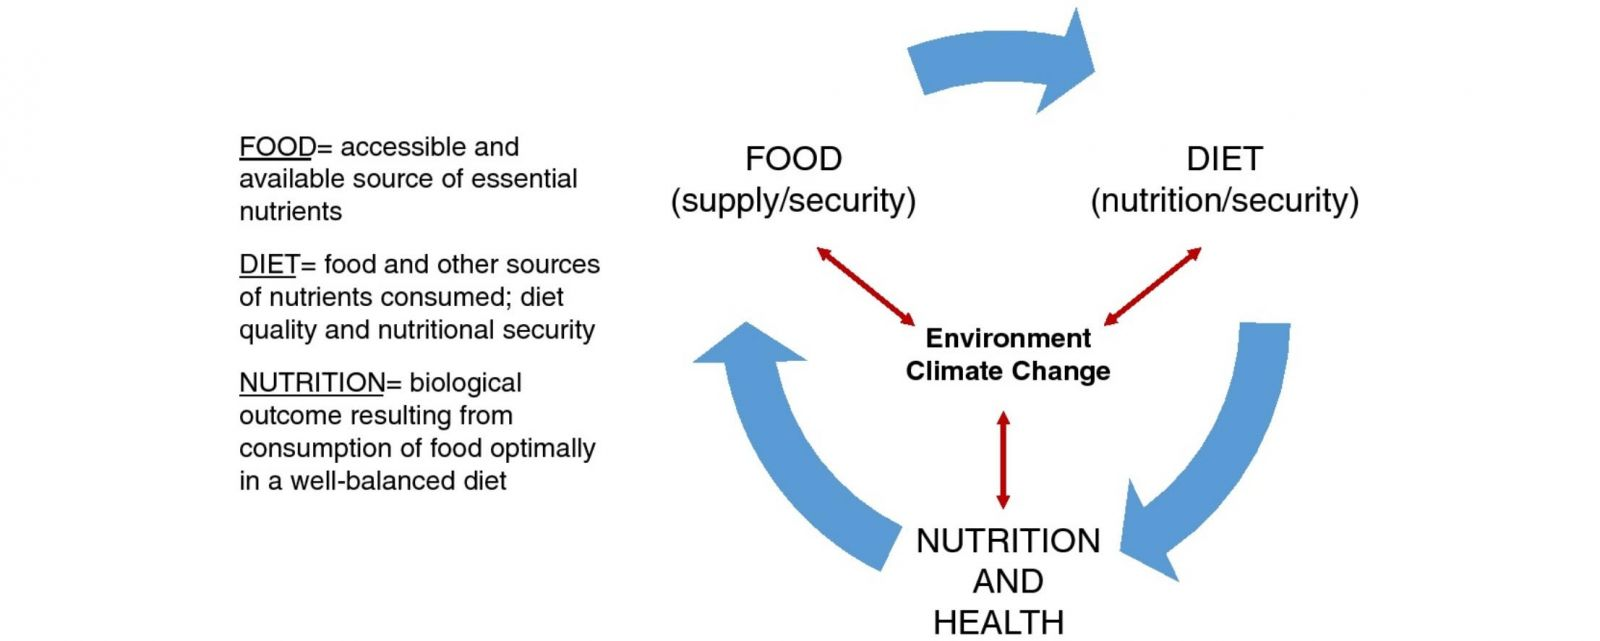 A figure demonstrating the intersection between nutrition,food, diet, and environmental change. Source: Raiten & Aimone, 2017